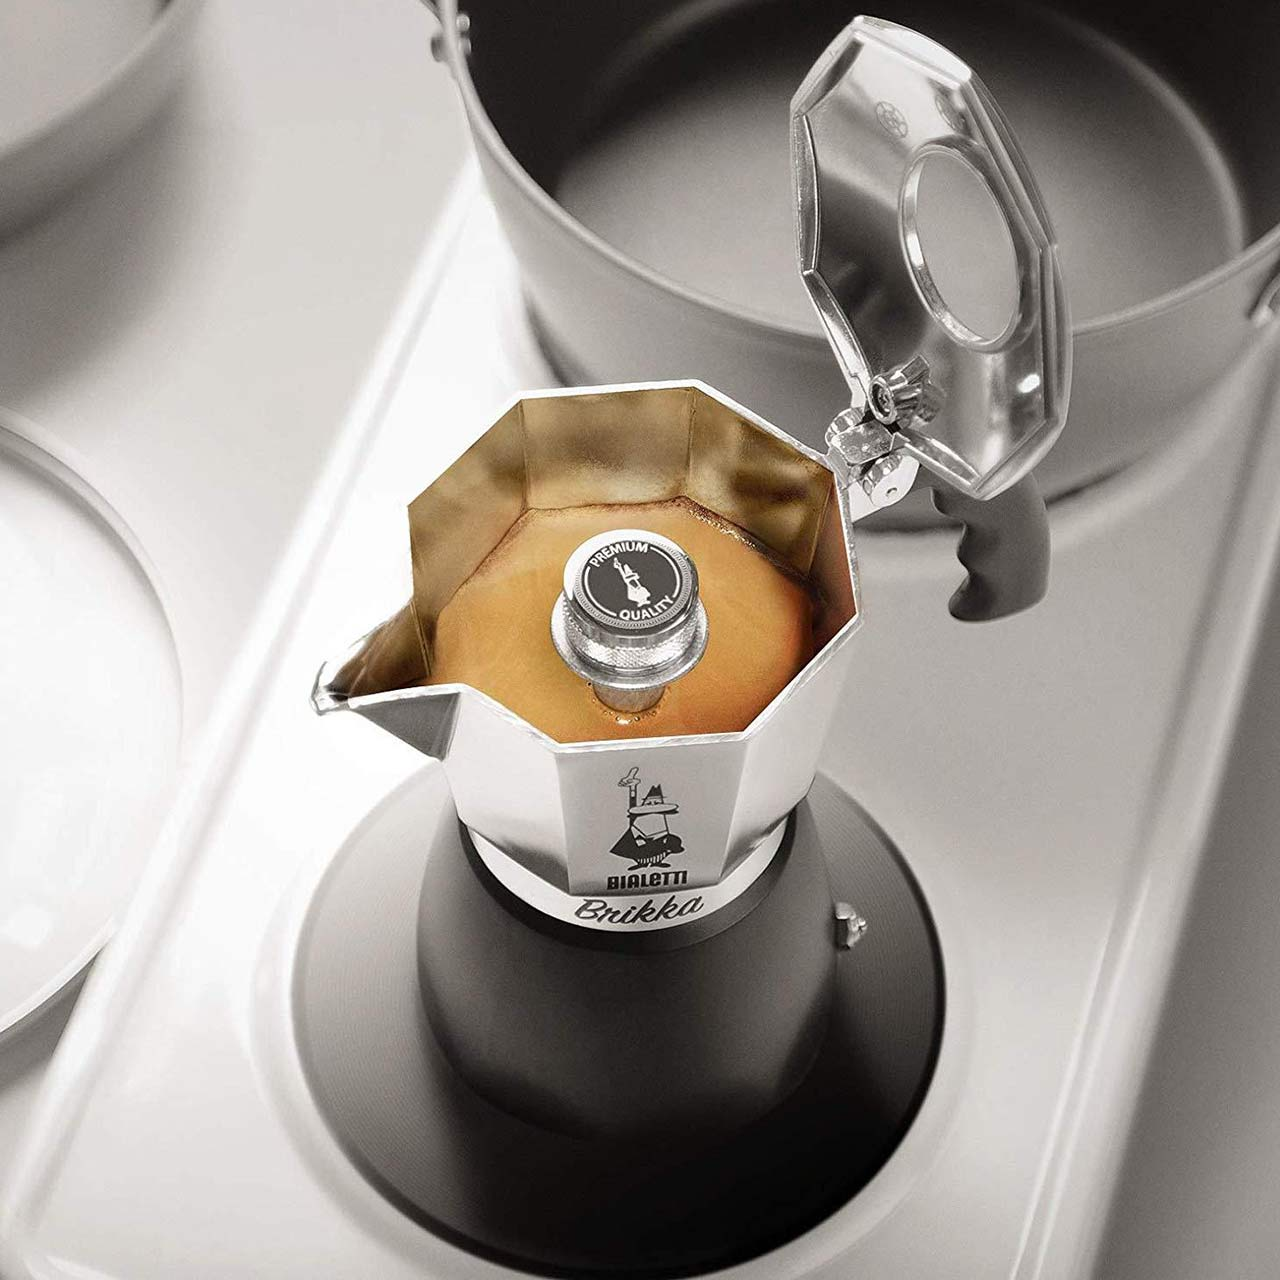 BIALETTI Brikka  2 Cup Espresso Coffee Maker | the design gift shop